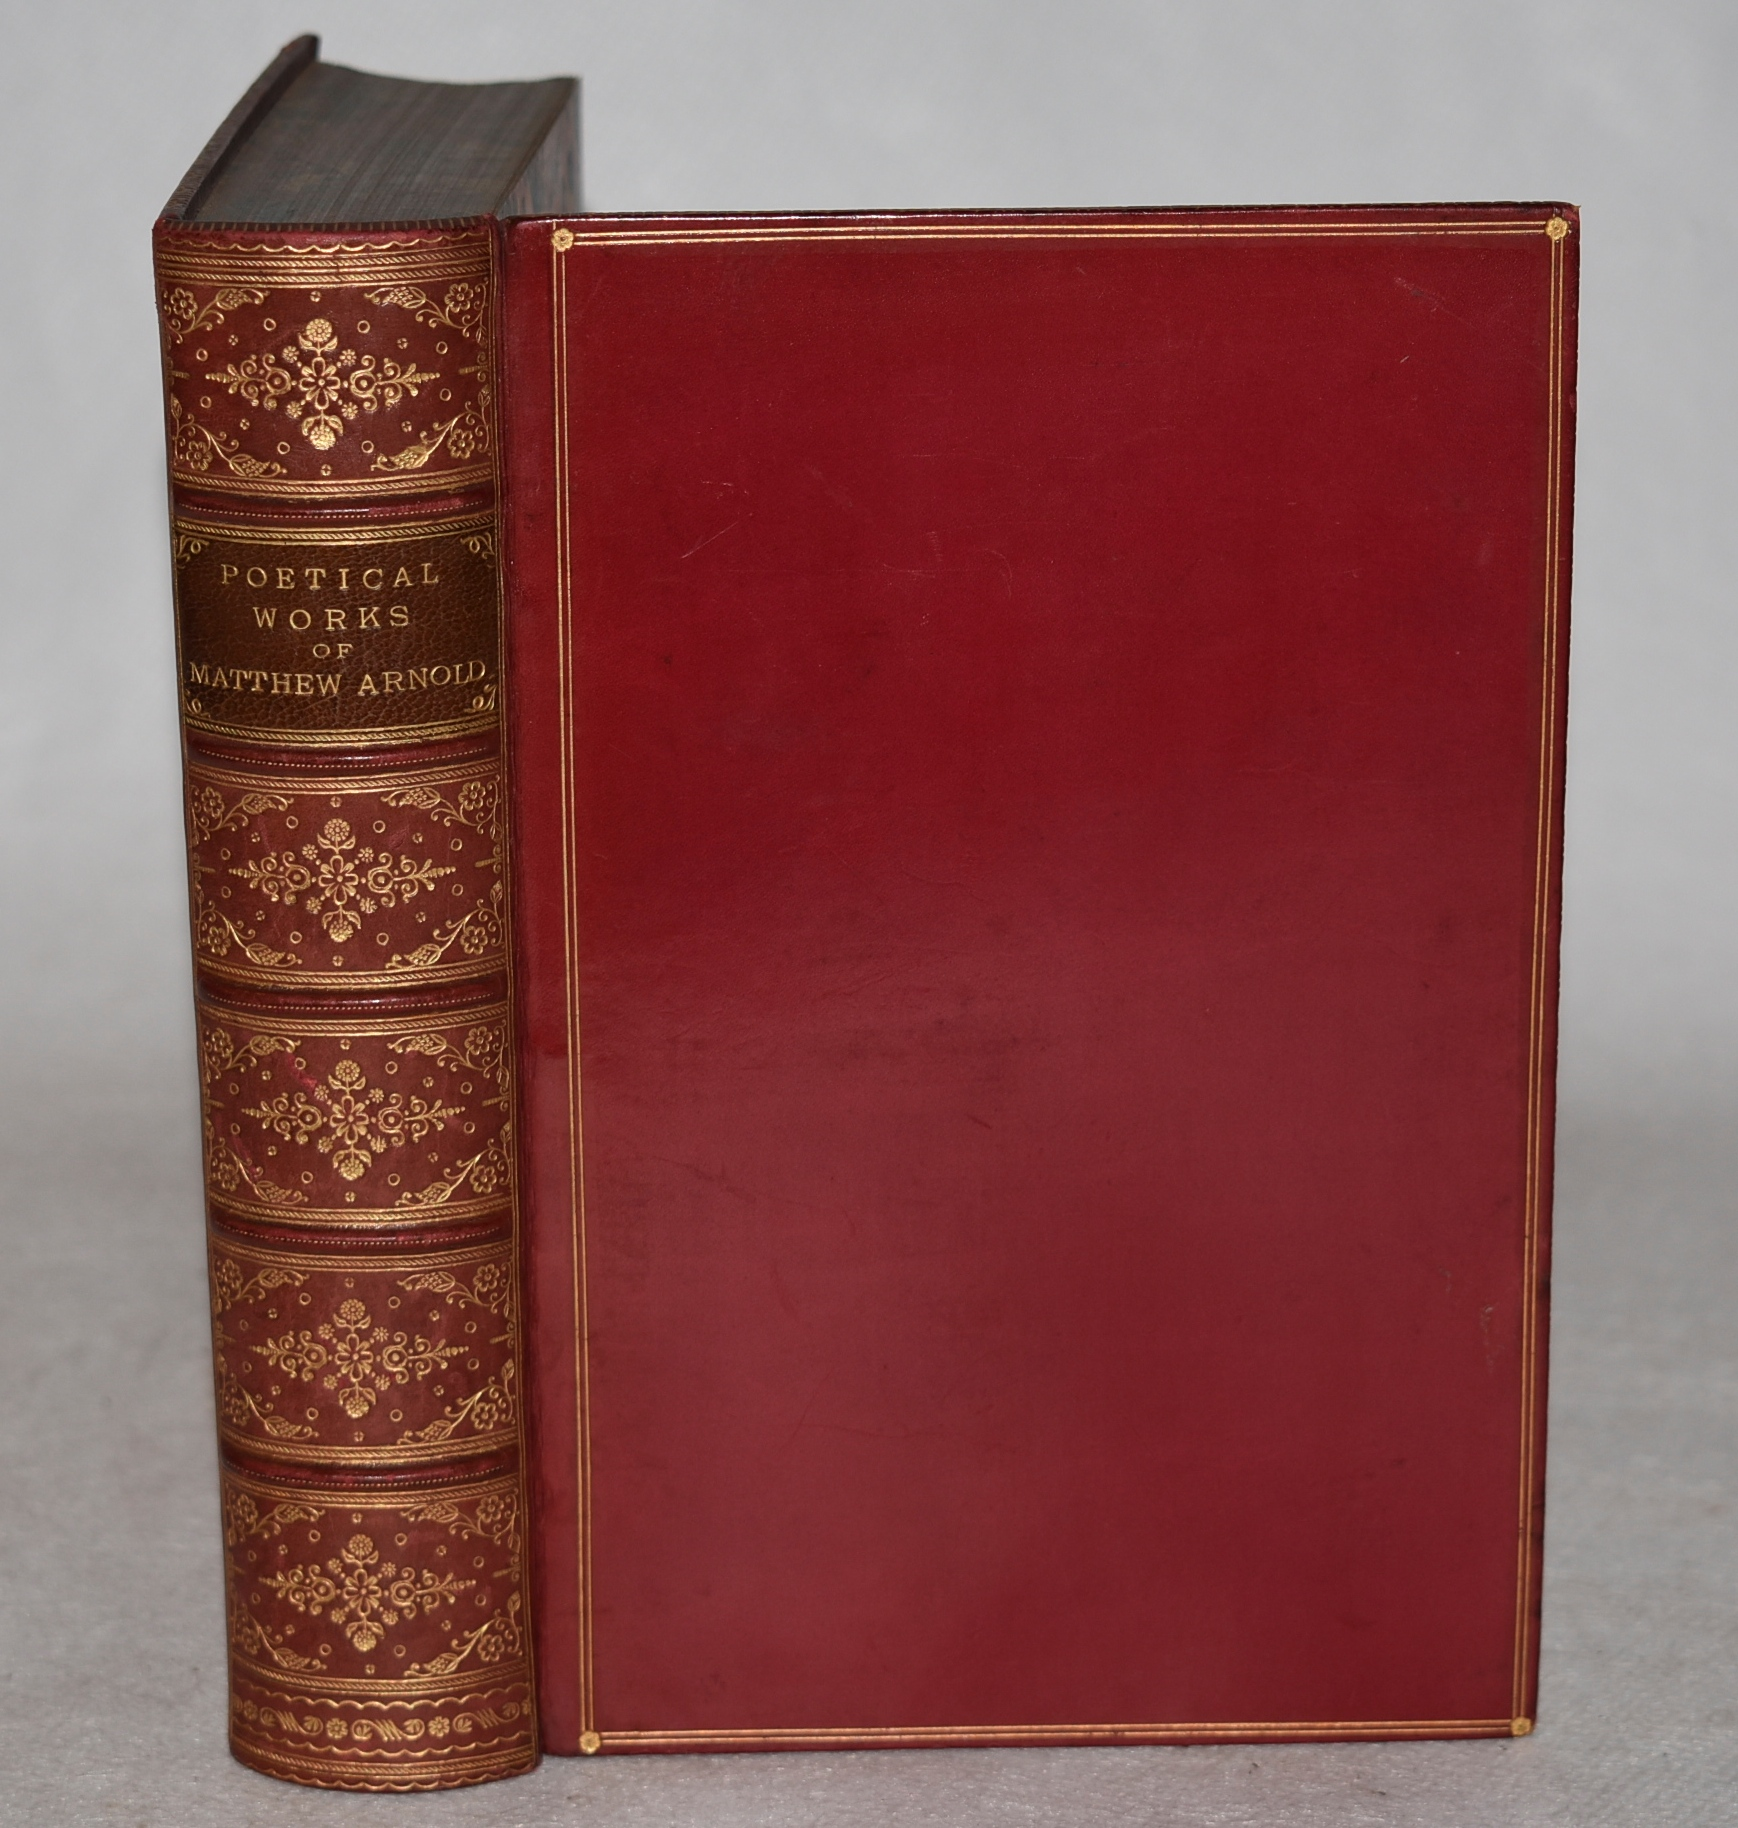 Image for Poetical Works of Matthew Arnold. In Leather Fine Binding.